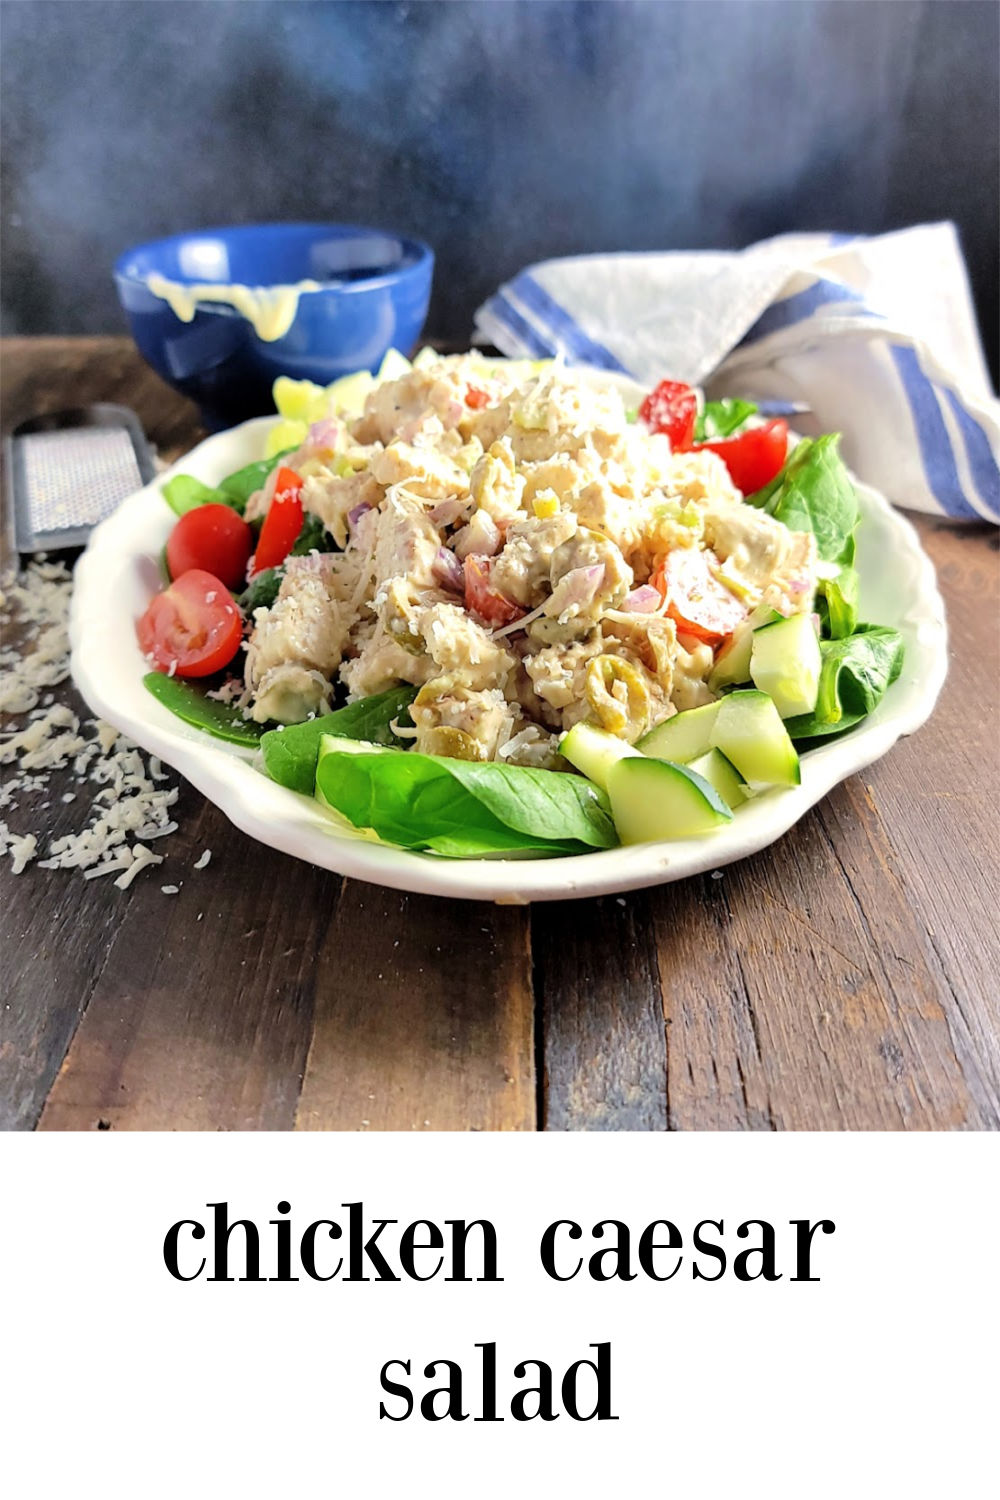 Caesar Chicken Salad - Cool & Creamy meets bright and tangy in this Caesar Chicken Salad. Serve as is, in a sandwich or wrap or with all your fave veggies. #ChickenCaesarSalad #ChickenSalad